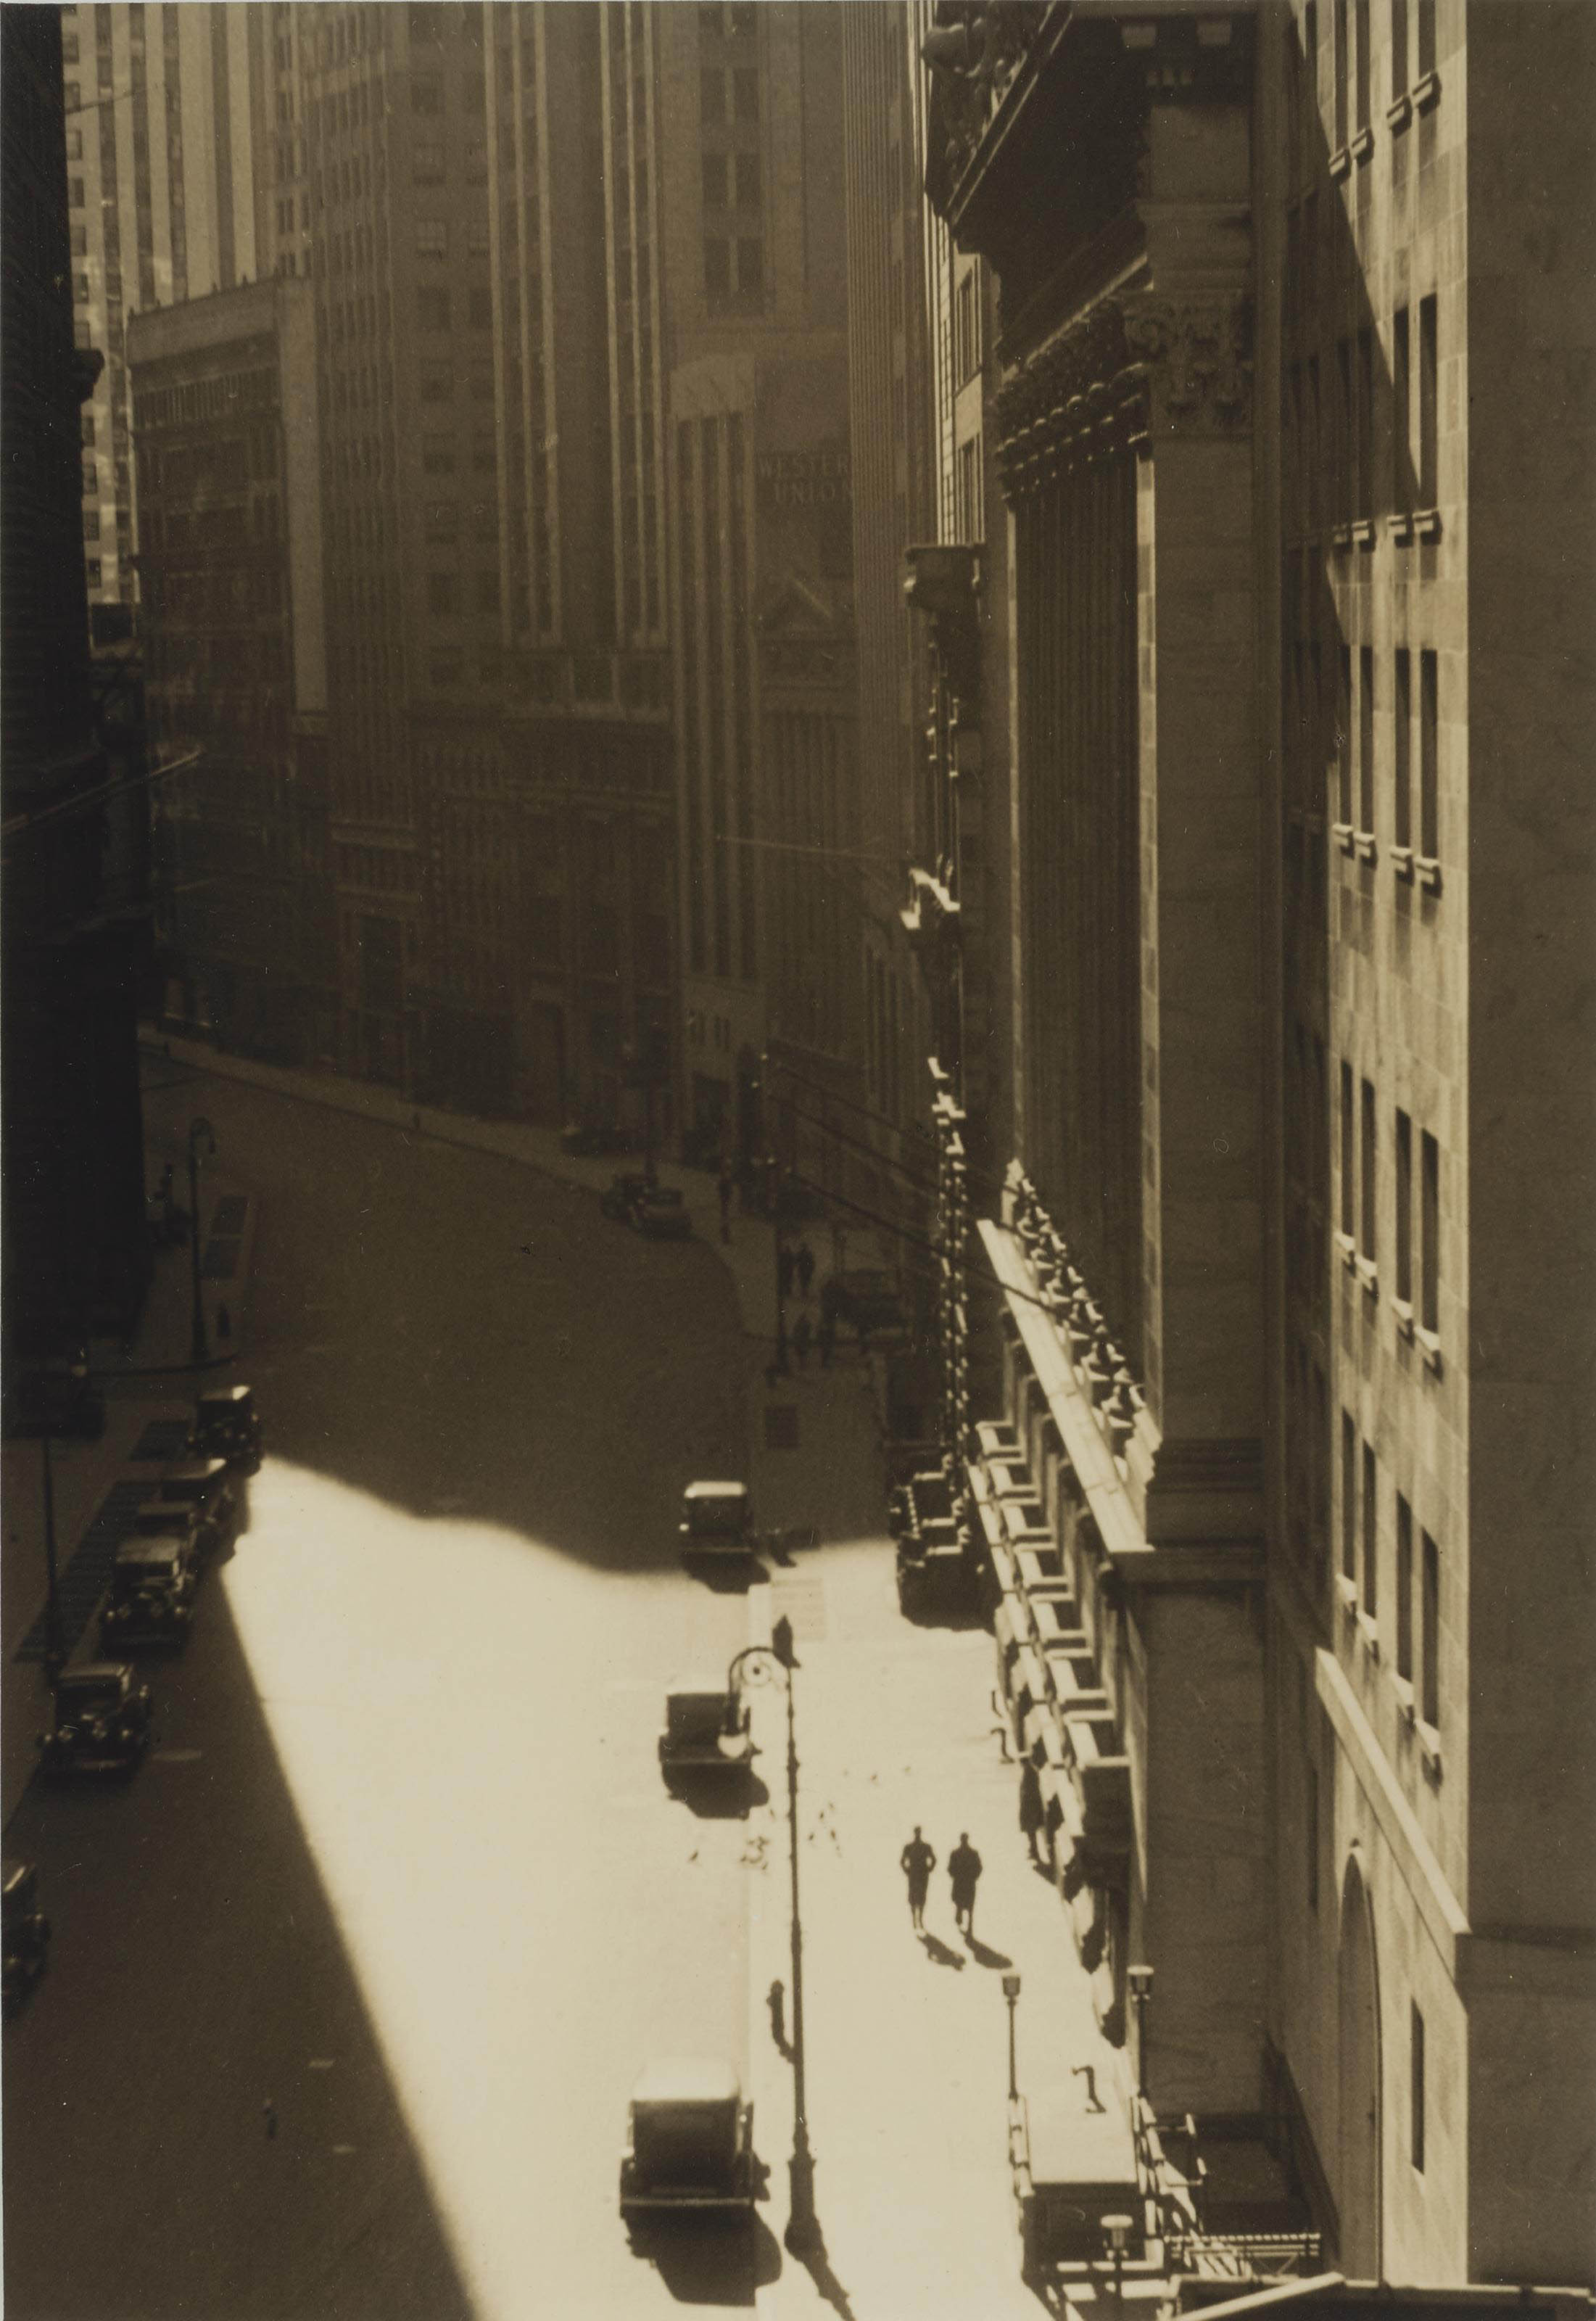 Exchange Place, c. 1930